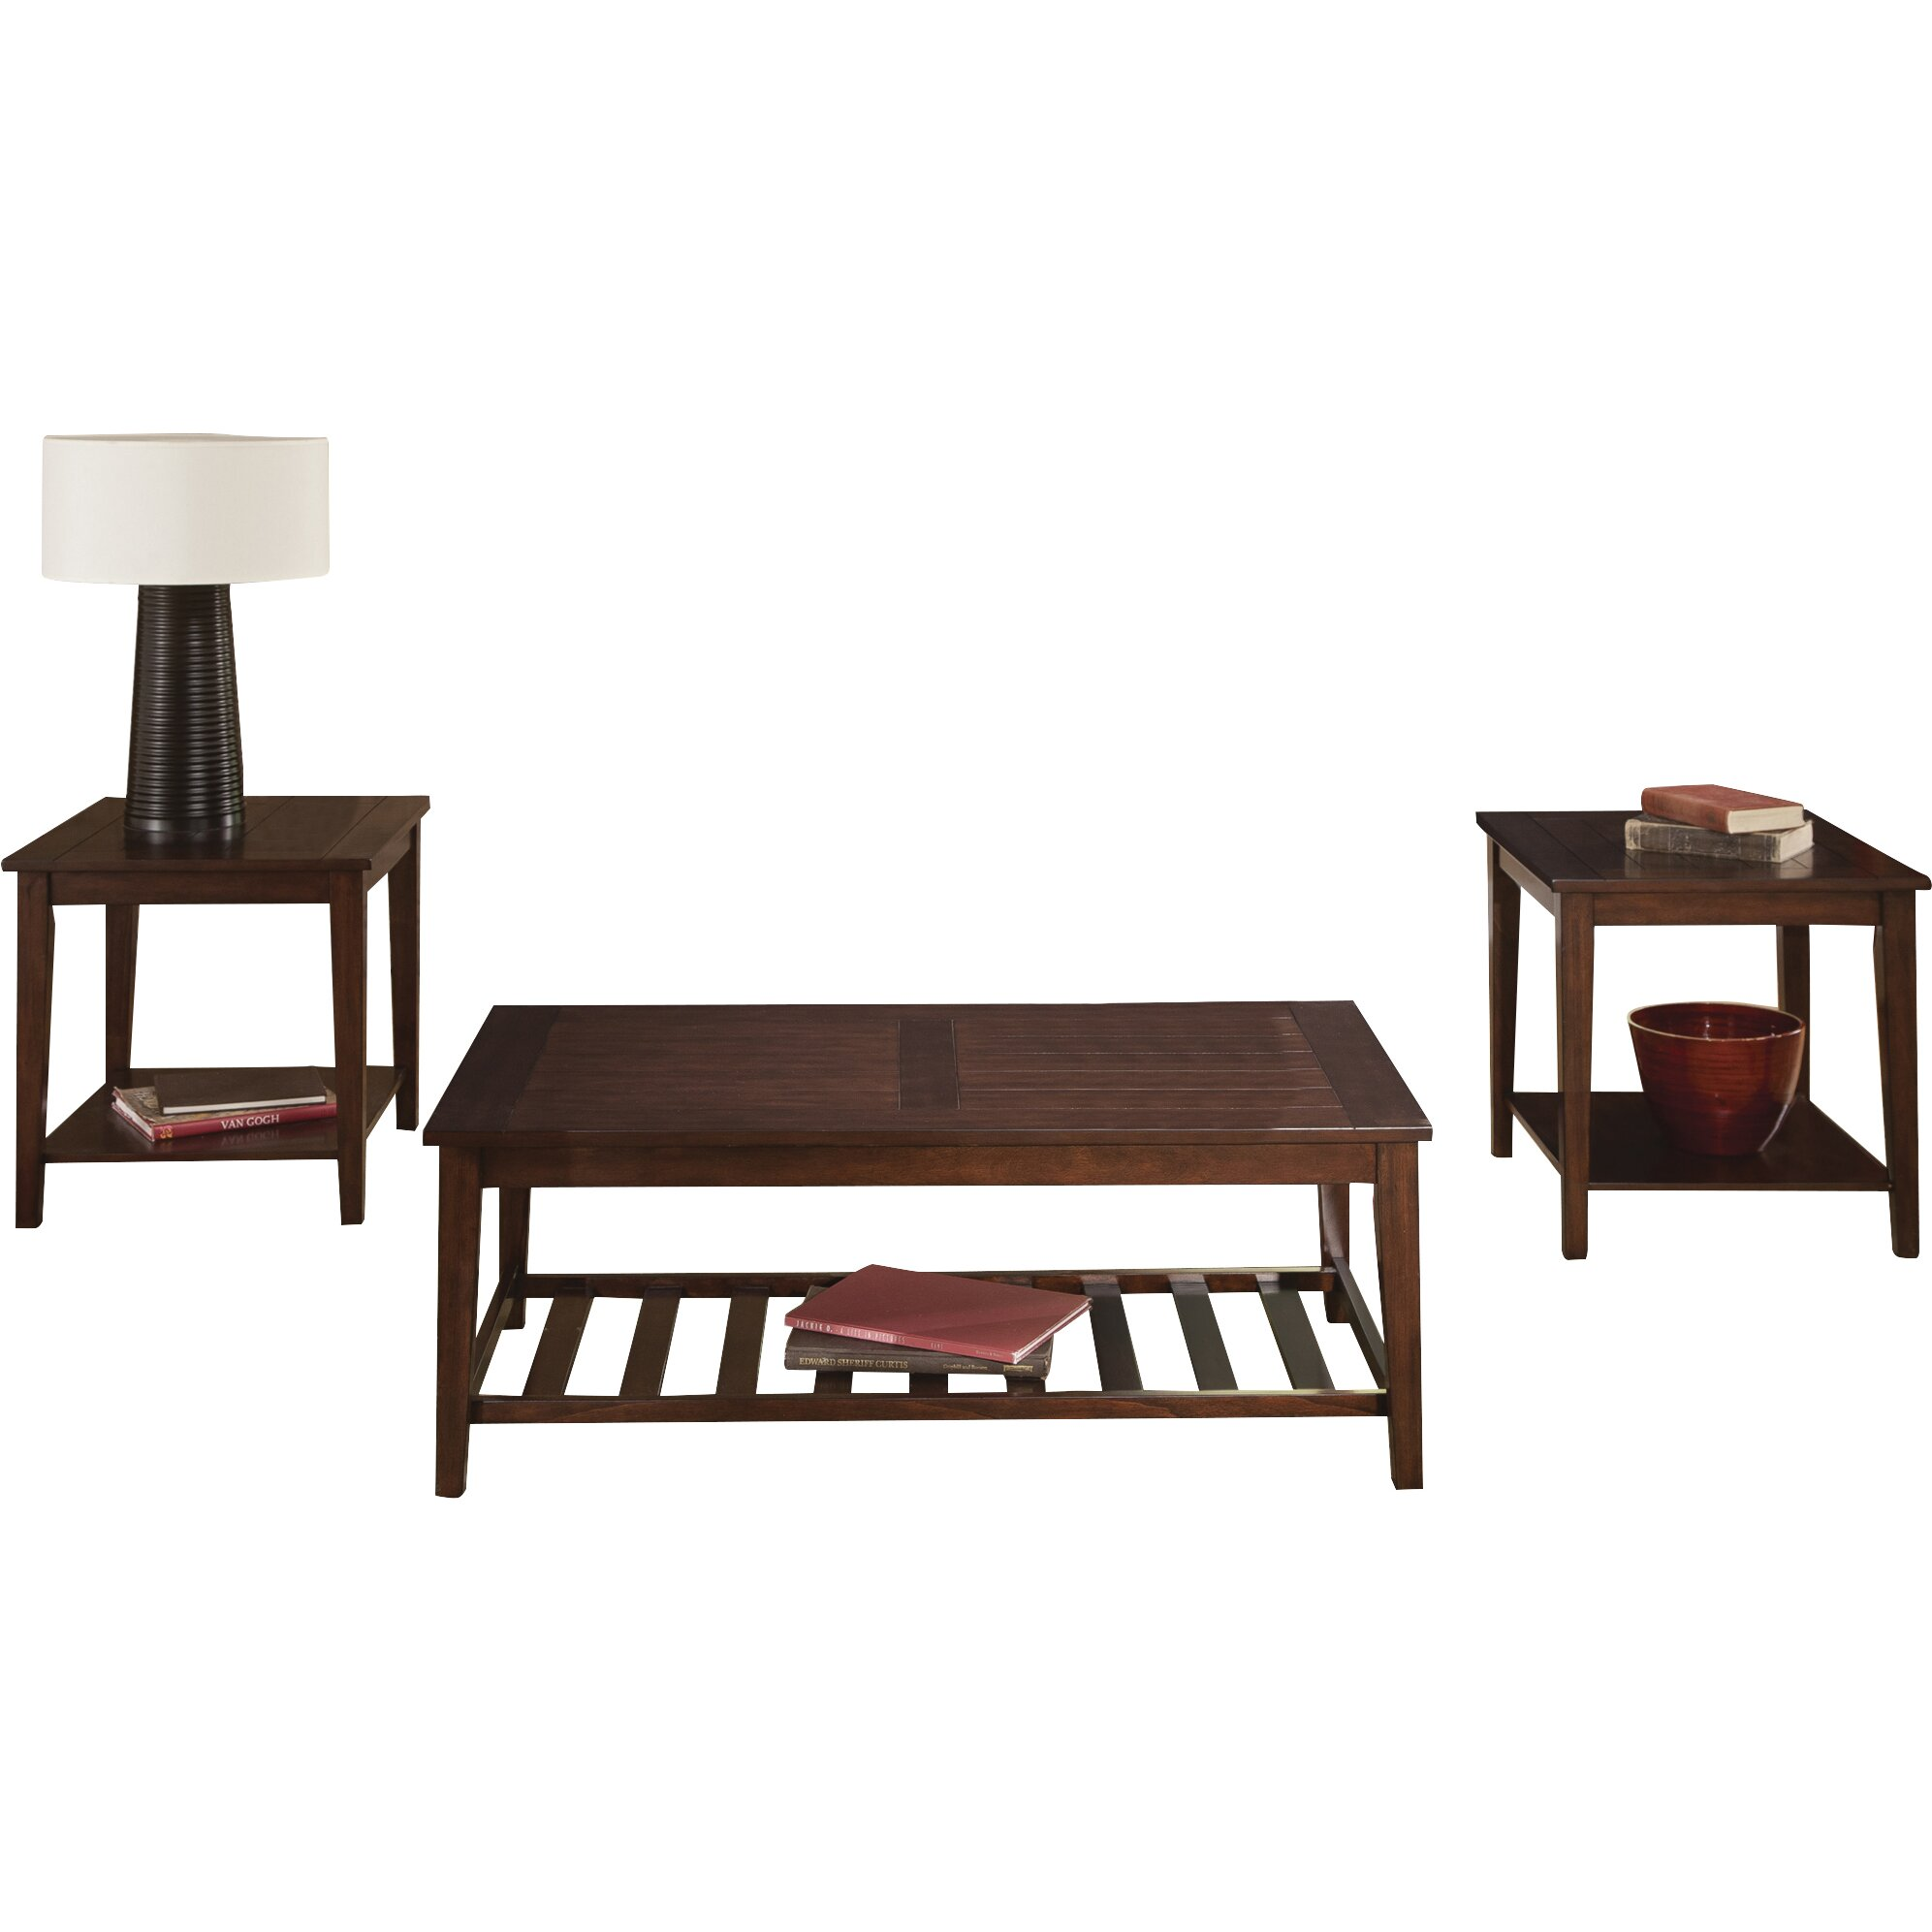 Wildon home missoula occasional 3 piece coffee table set for Regulation 85 table a